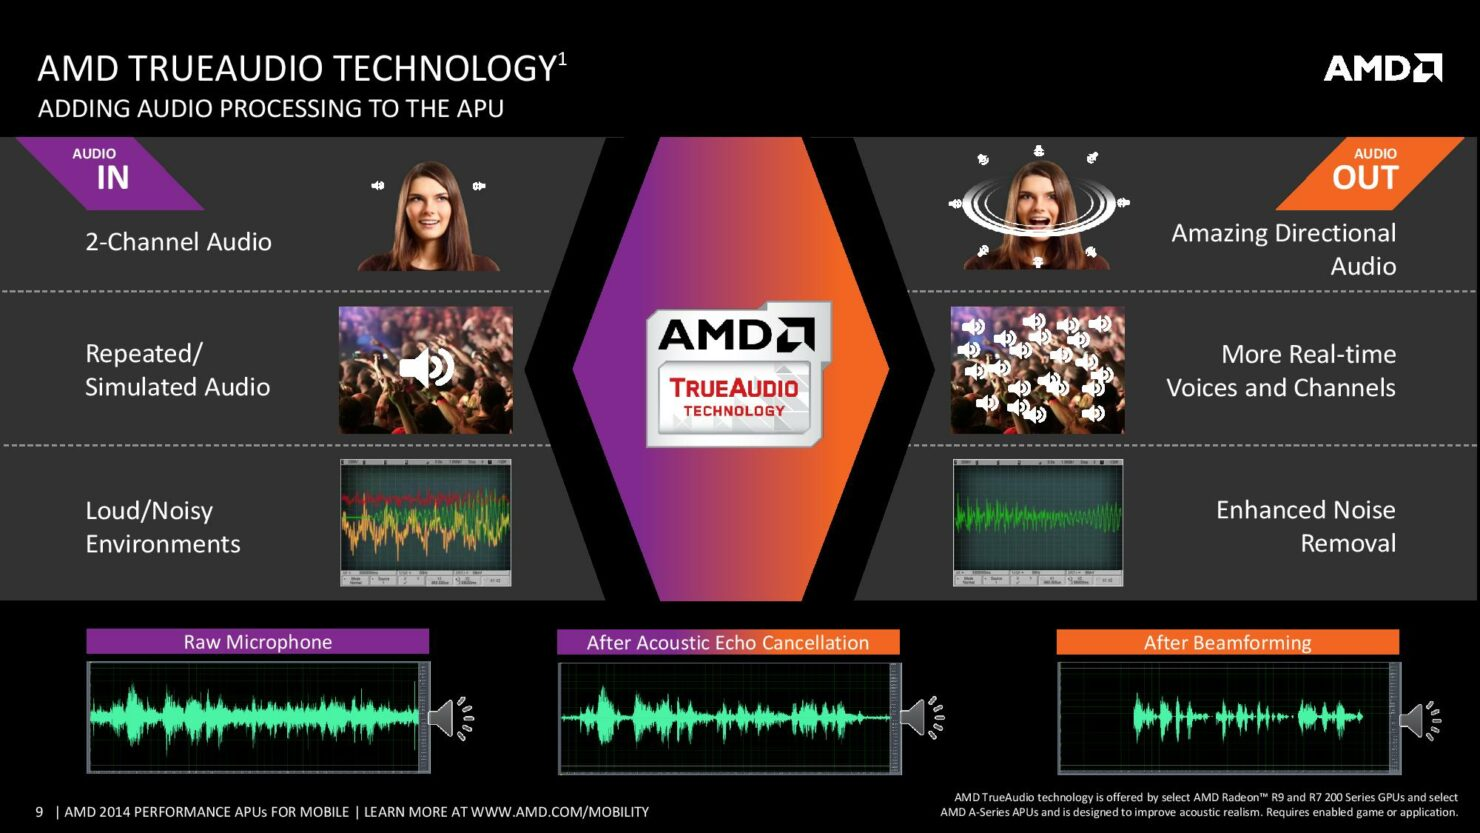 amd2014performancemobileapus-140528183404-phpapp02-page-009